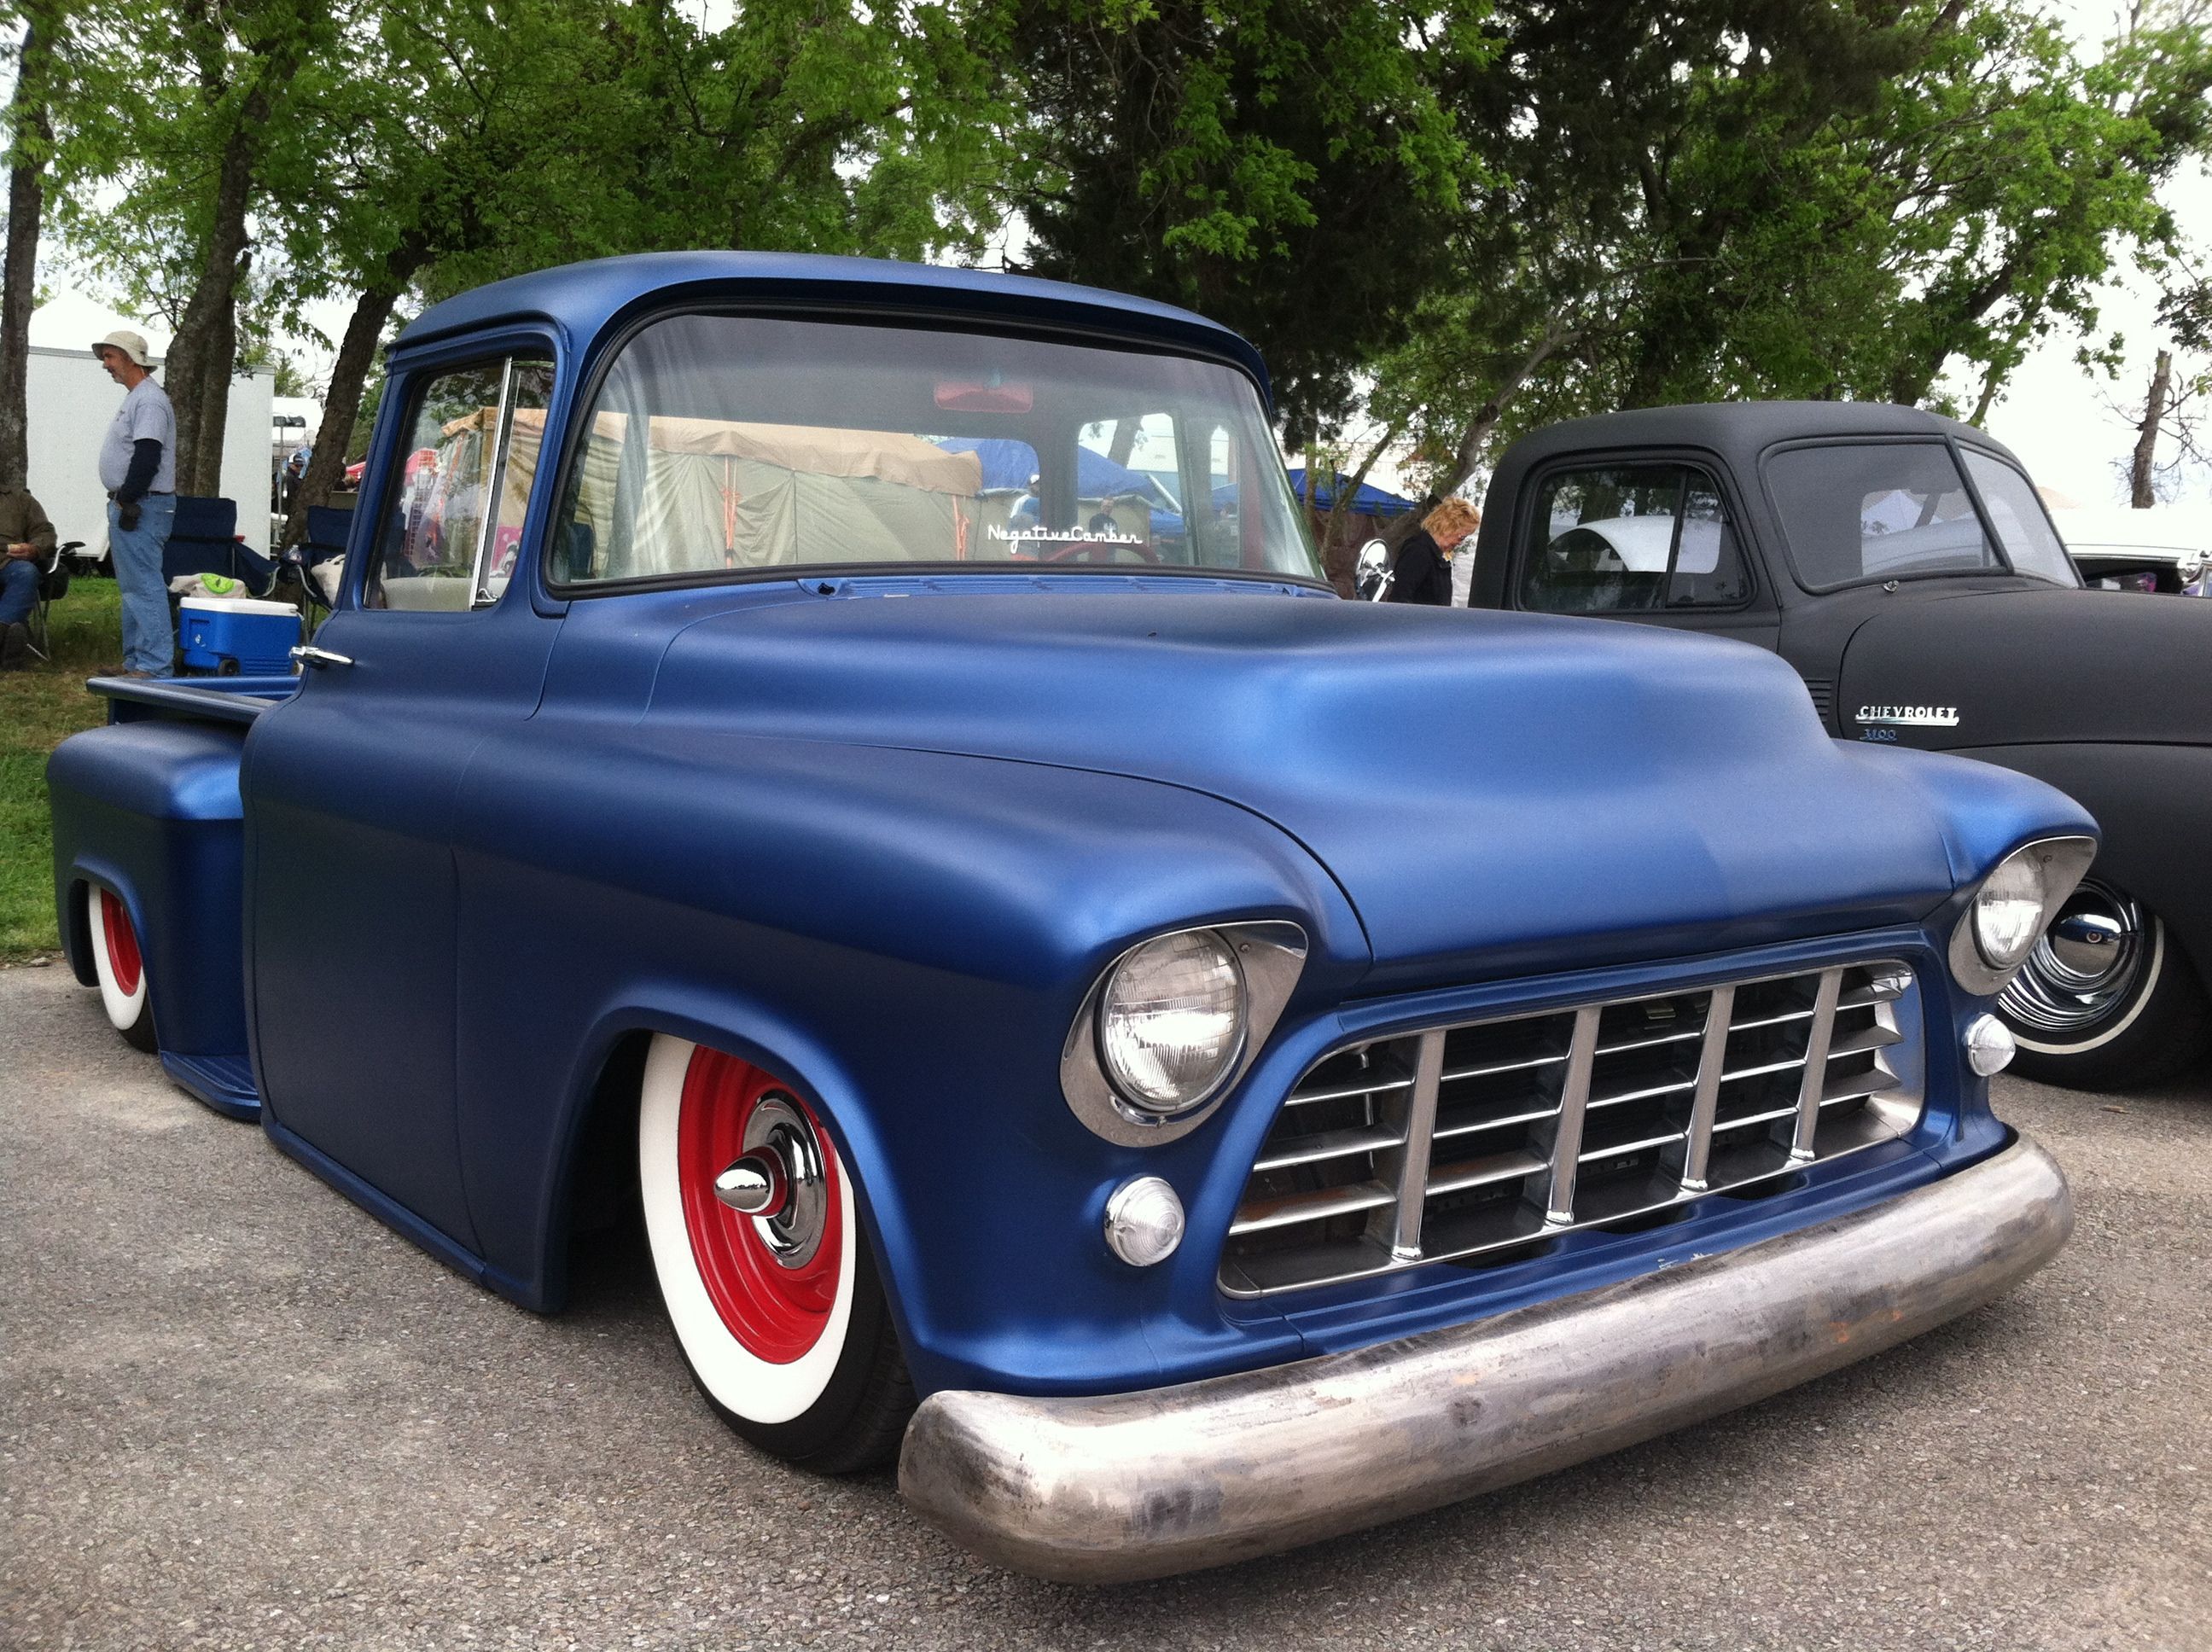 Chevy truck pick up truck pinterest chevy cars and classic trucks